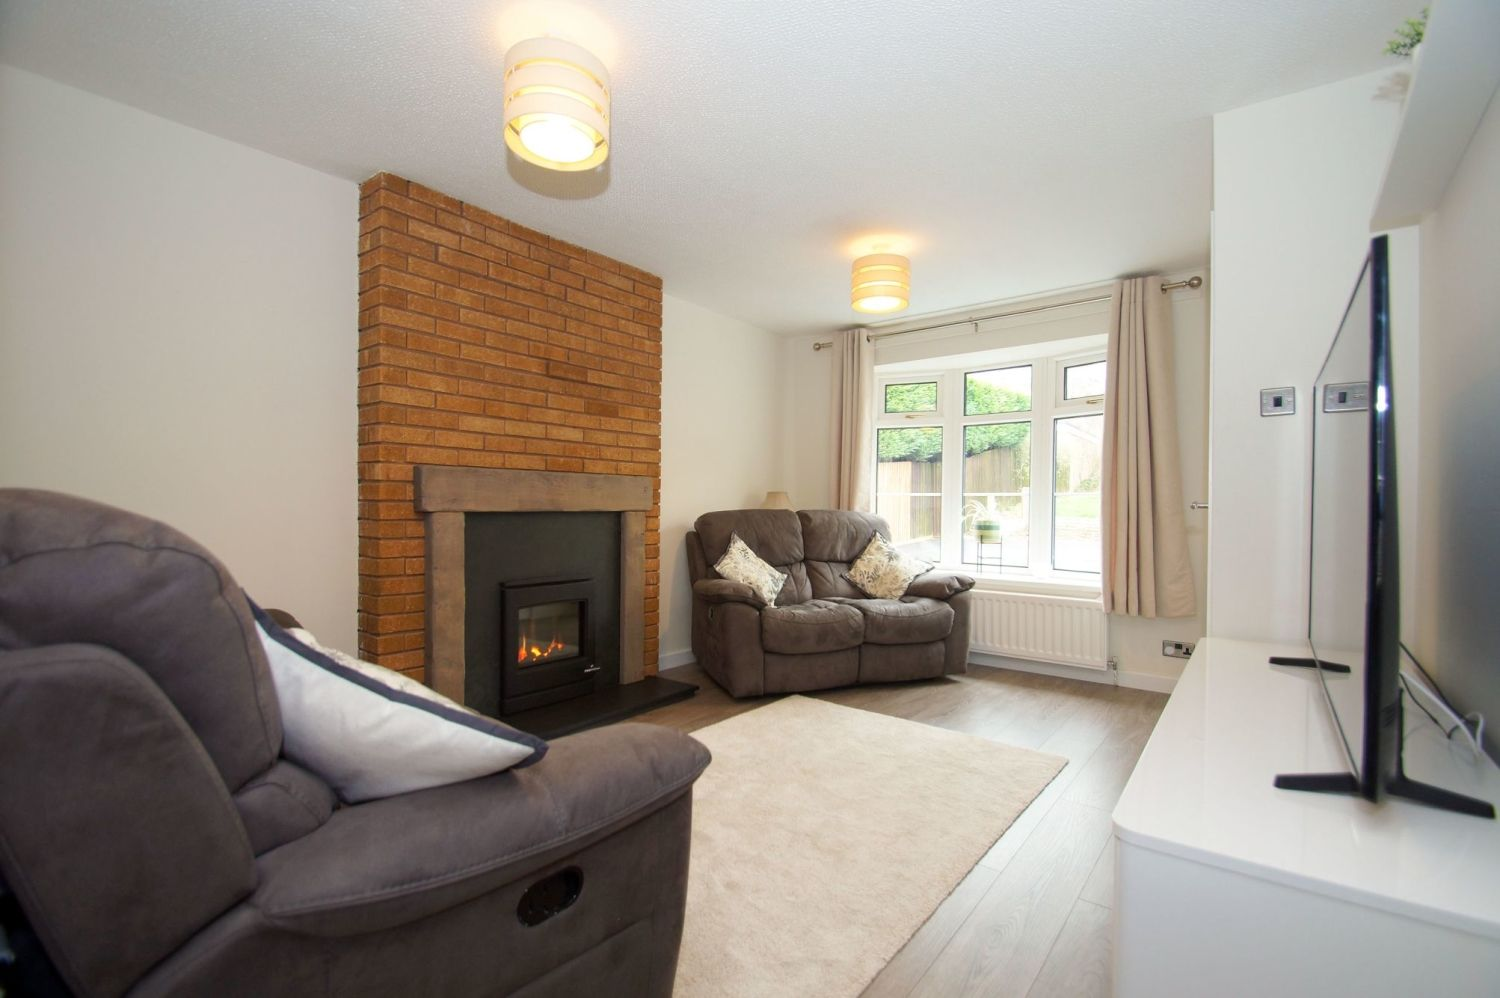 3 bed detached for sale in Painswick Close, Oakenshaw  - Property Image 8